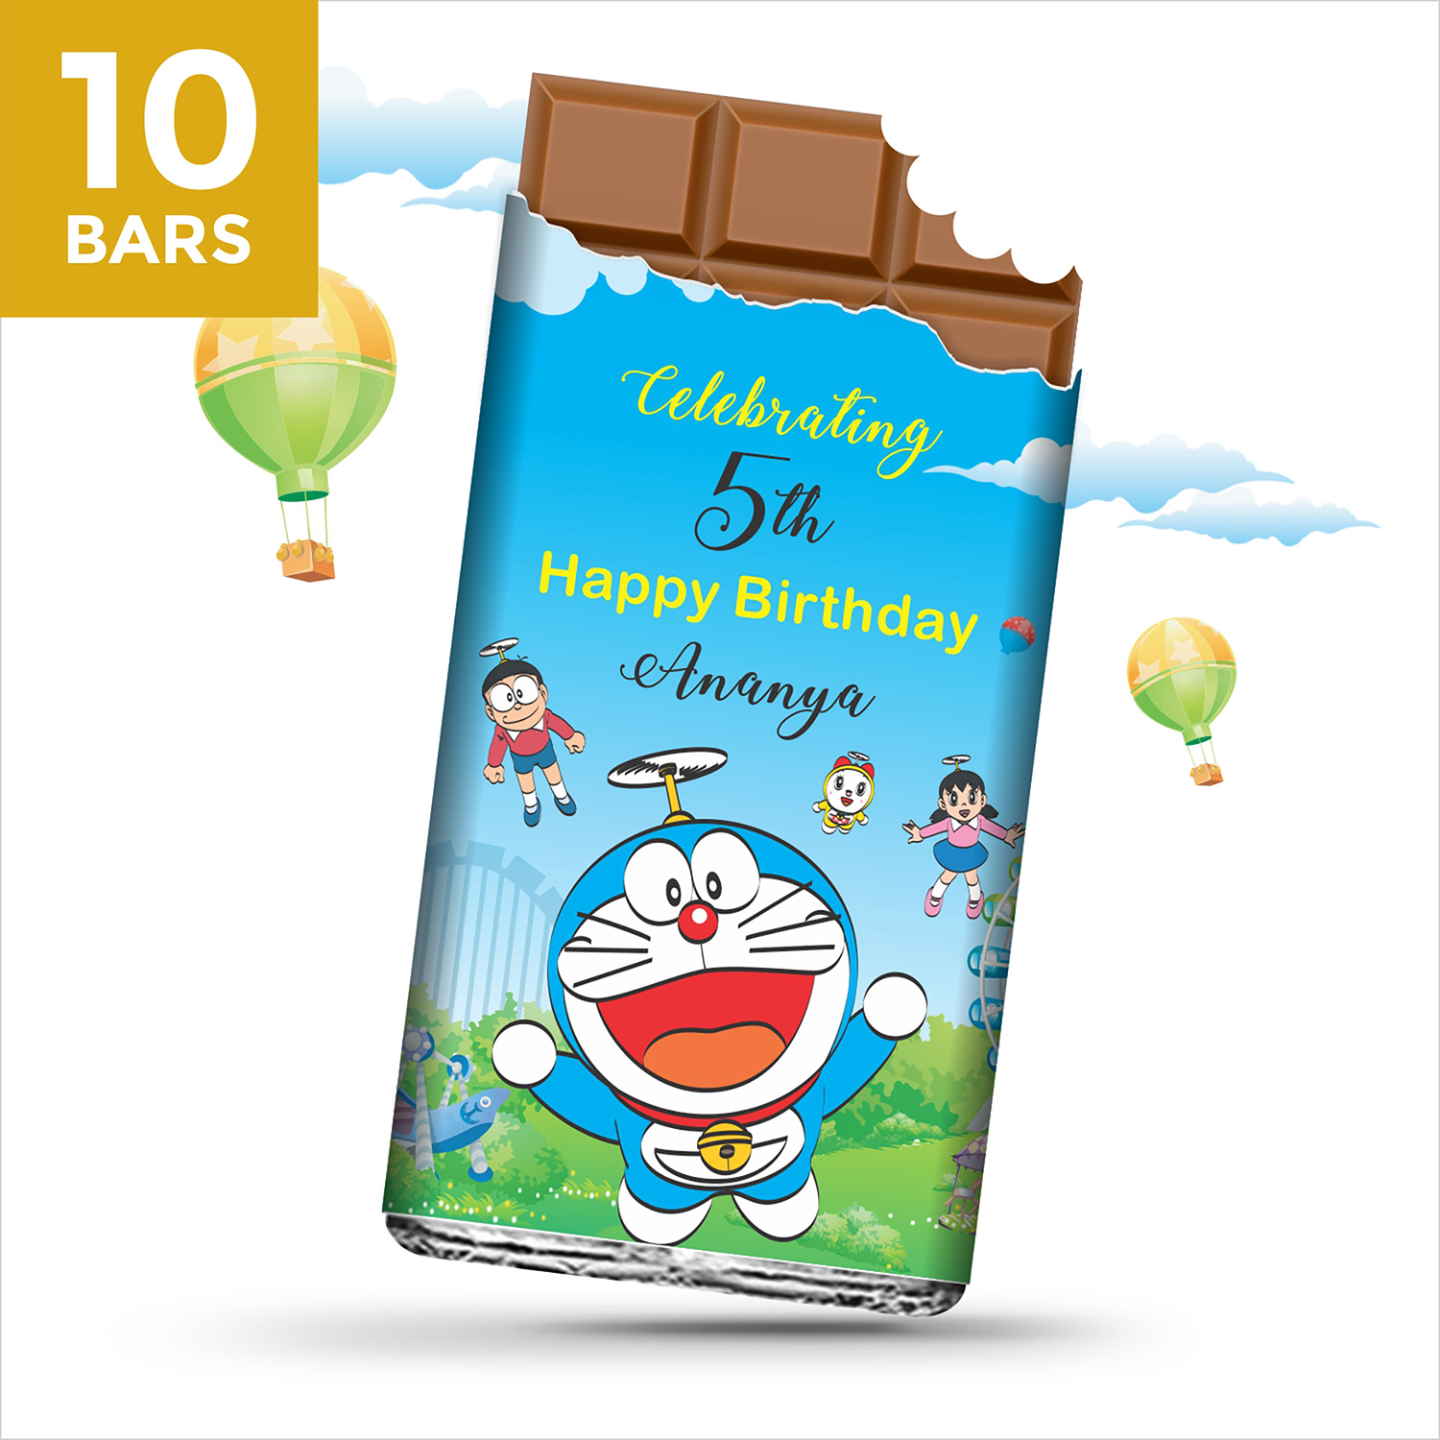 Birthday Return Gifts, Doraemon Personalize Chocolates -10 Bars